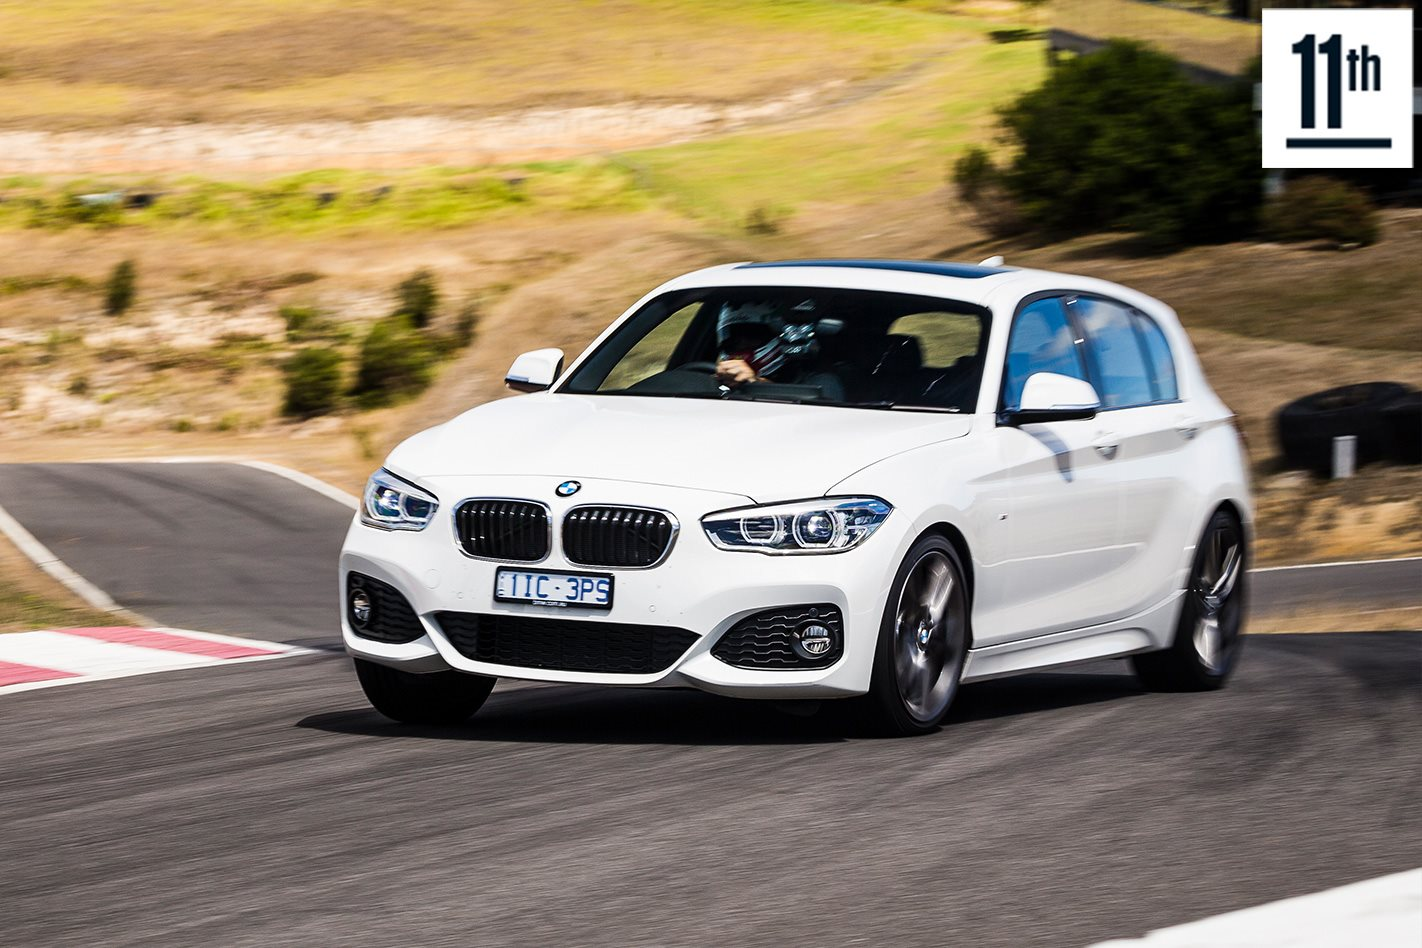 2018 BMW 125i M Sport: Hot Hatch Megatest 11th